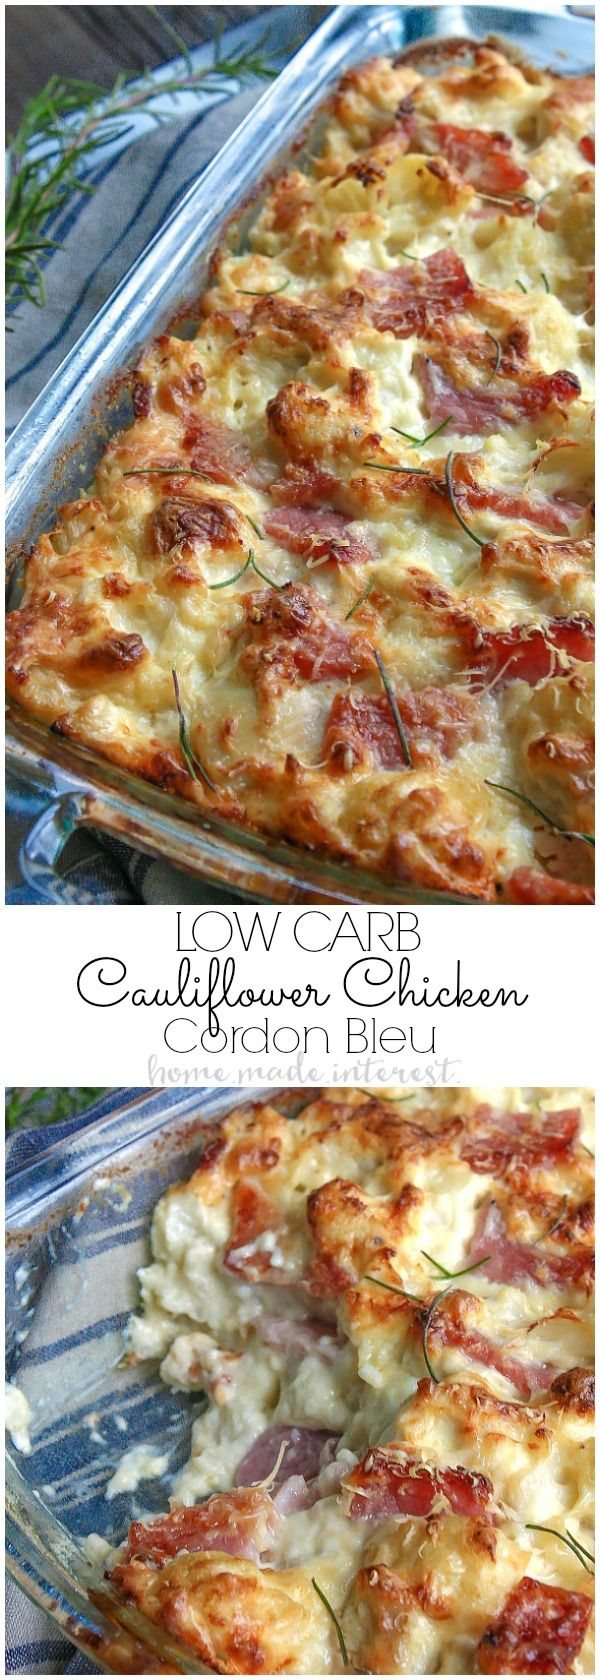 This chicken cordon bleu casserole is a low carb recipe that is rich, creamy, and amazing. This is an easy low carb dinner recipe made with cauliflower, ham, chicken, covered in a creamy dijon sauce.